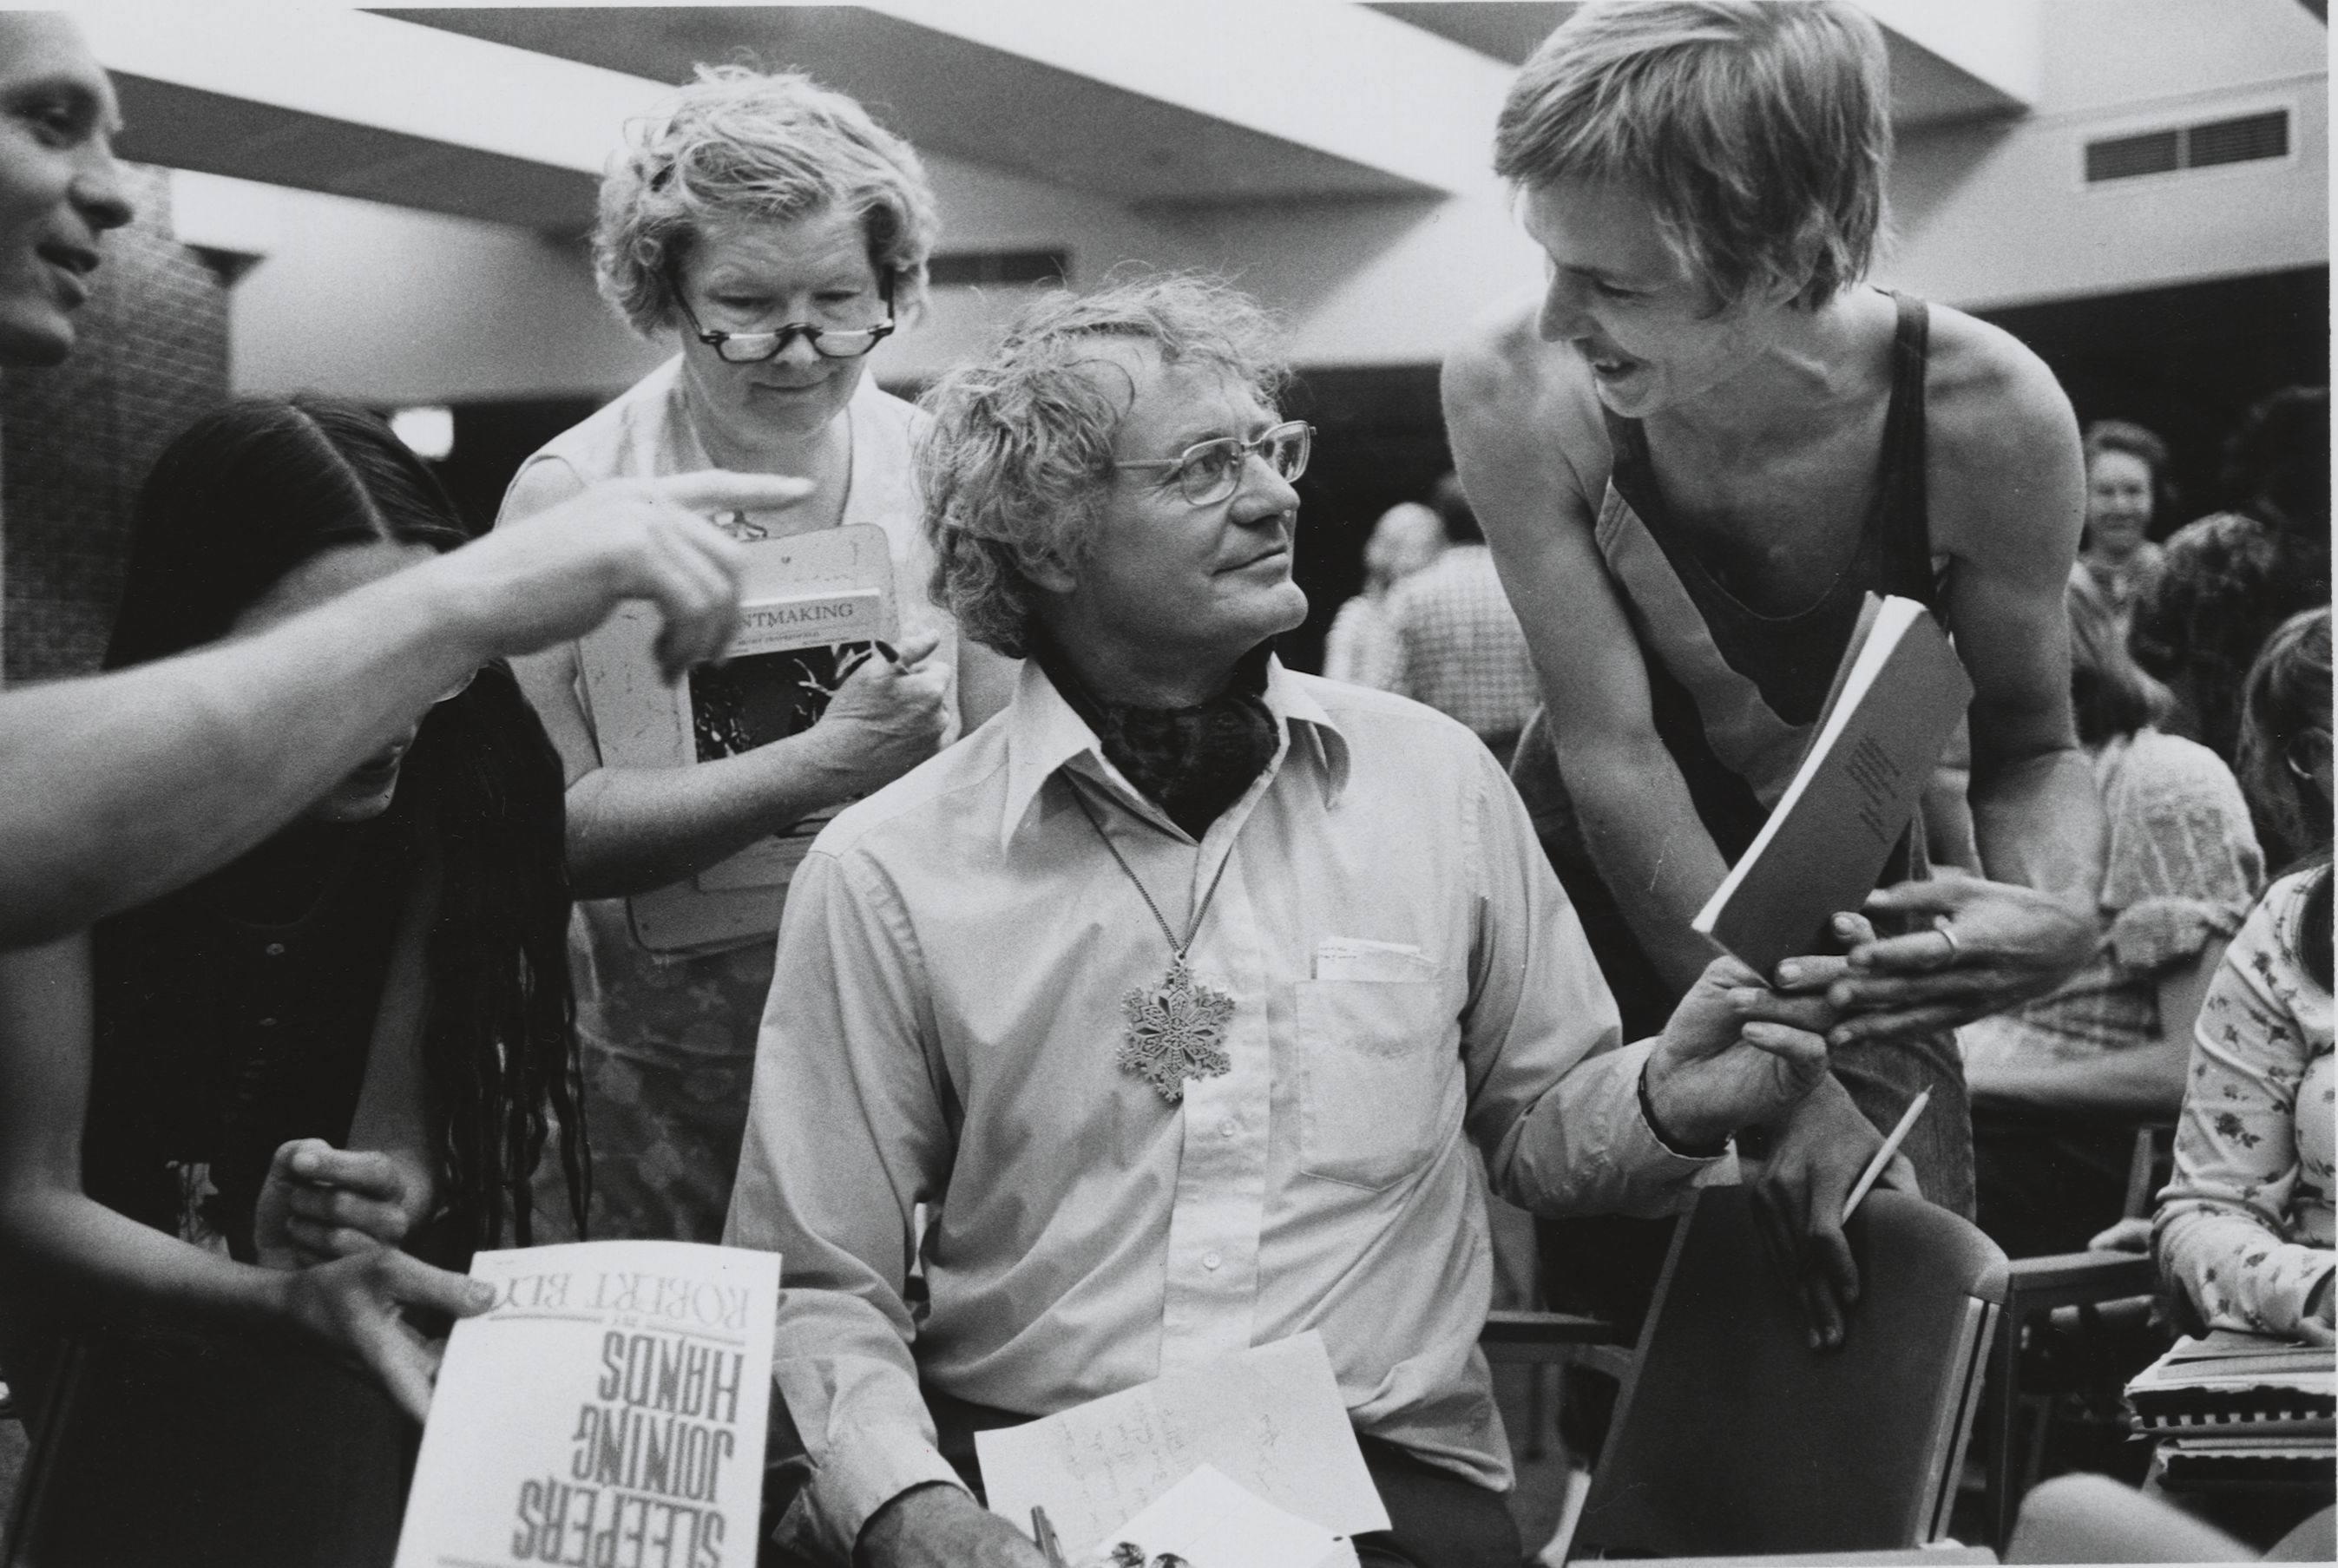 Robert Bly at National Poetry Festival, 1975